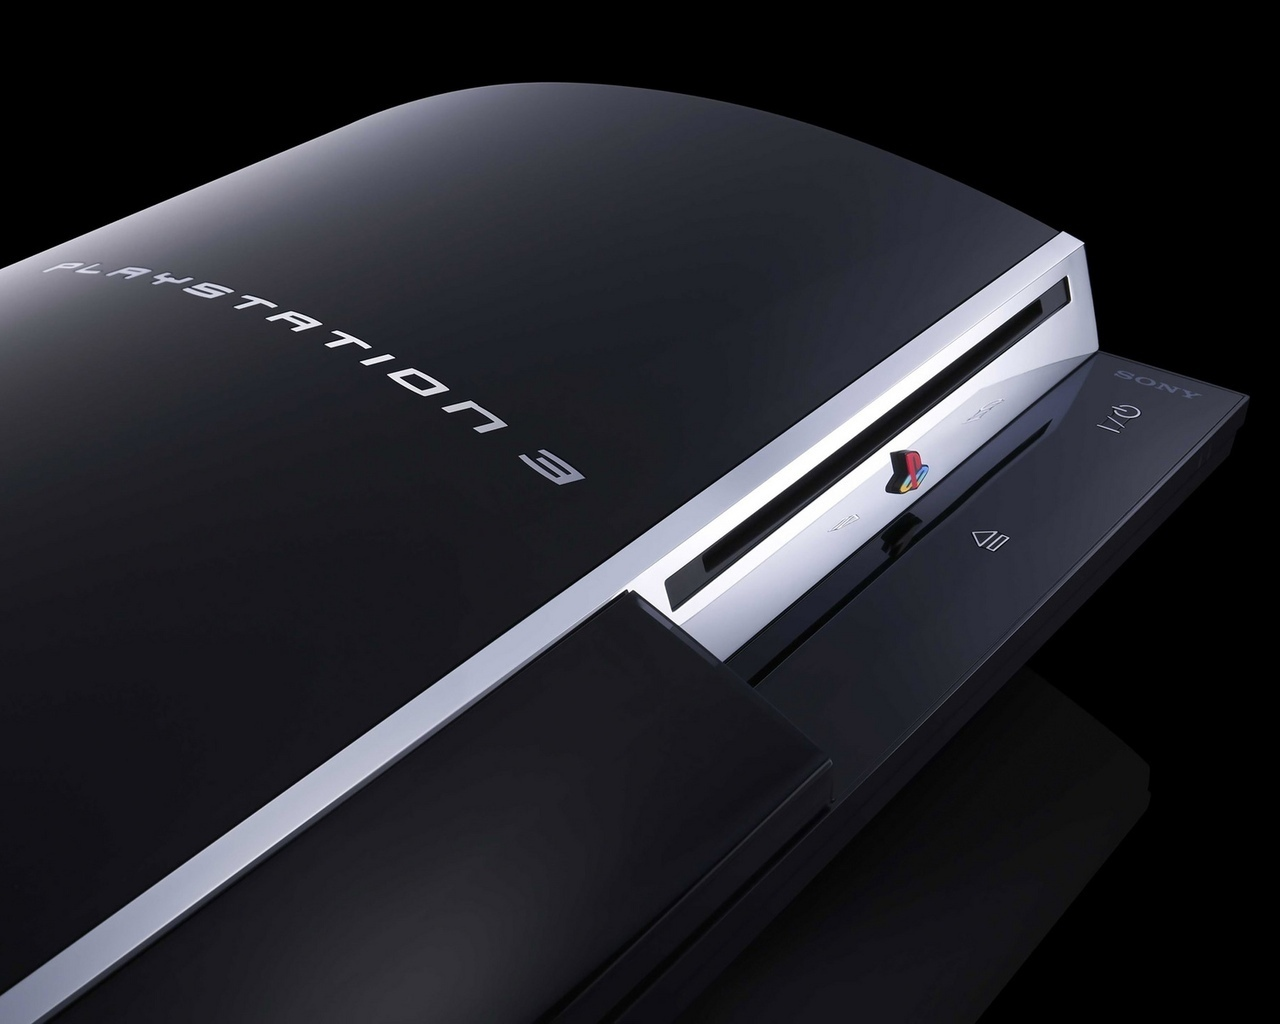 Sony To Decommission More Online Servers Fors PS3 Titles In Early 2014